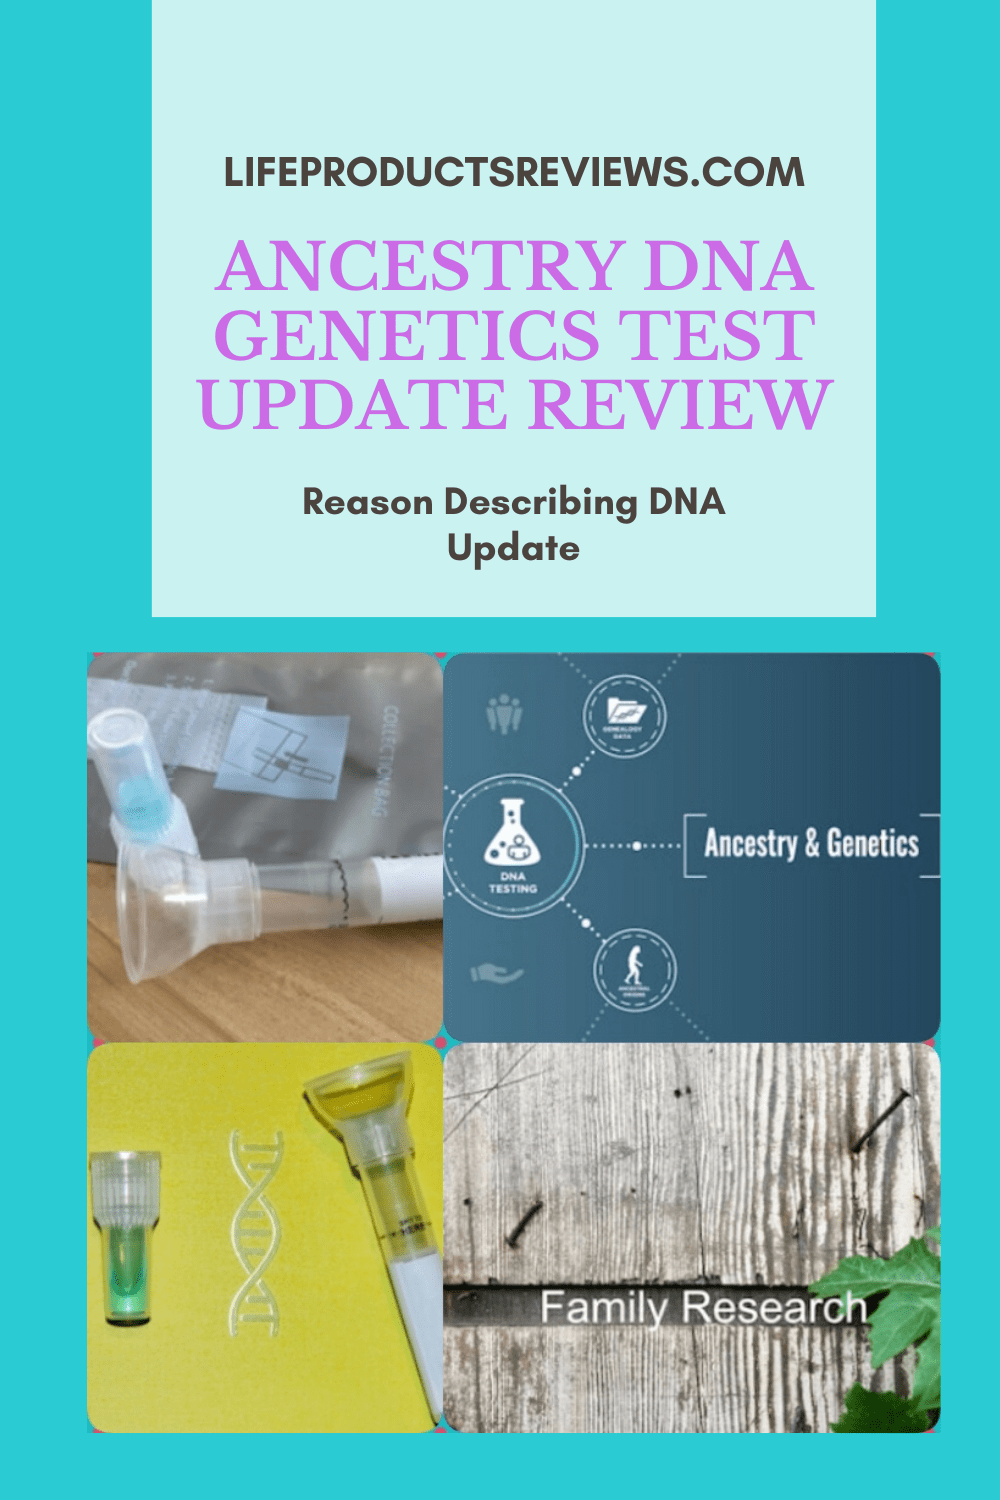 Ancestry-genetics-dna-update-review